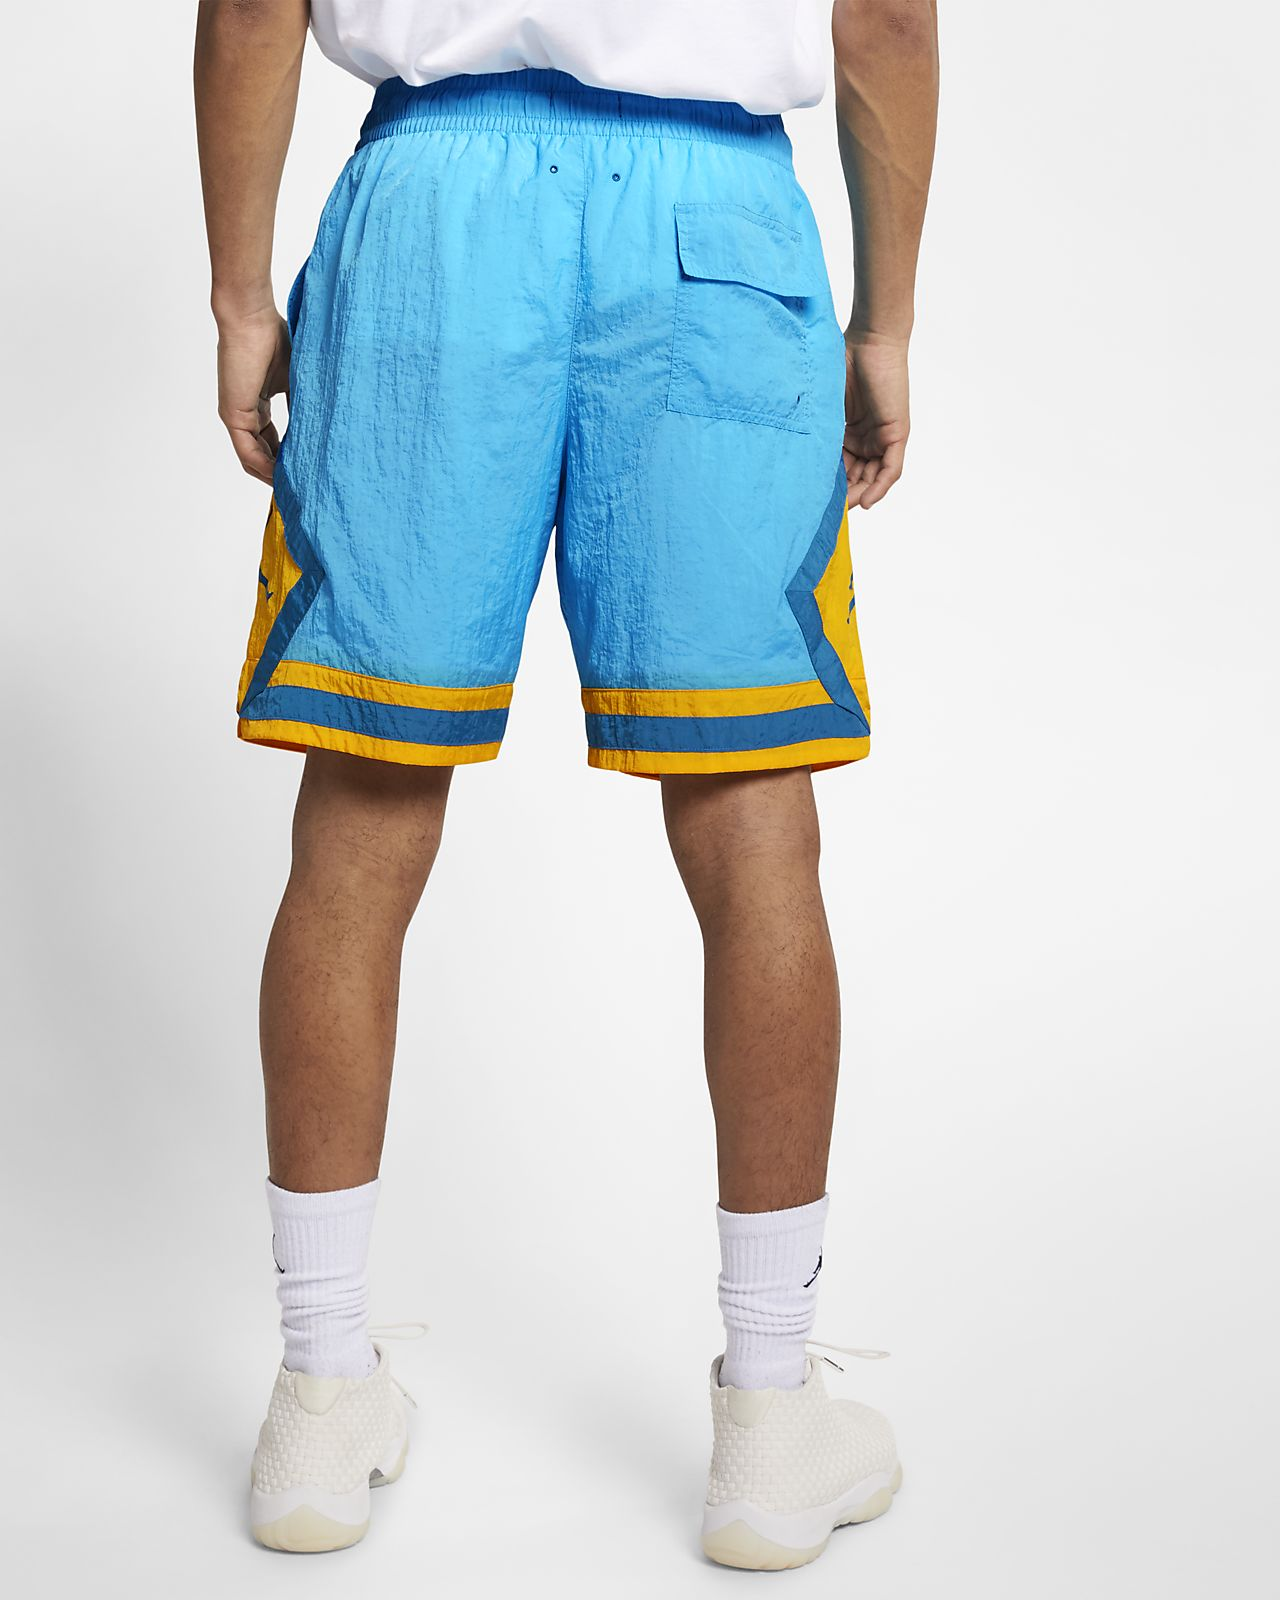 quality design 81720 a54cb Low Resolution Jordan Diamond Poolside Men s Shorts Jordan Diamond Poolside  Men s Shorts